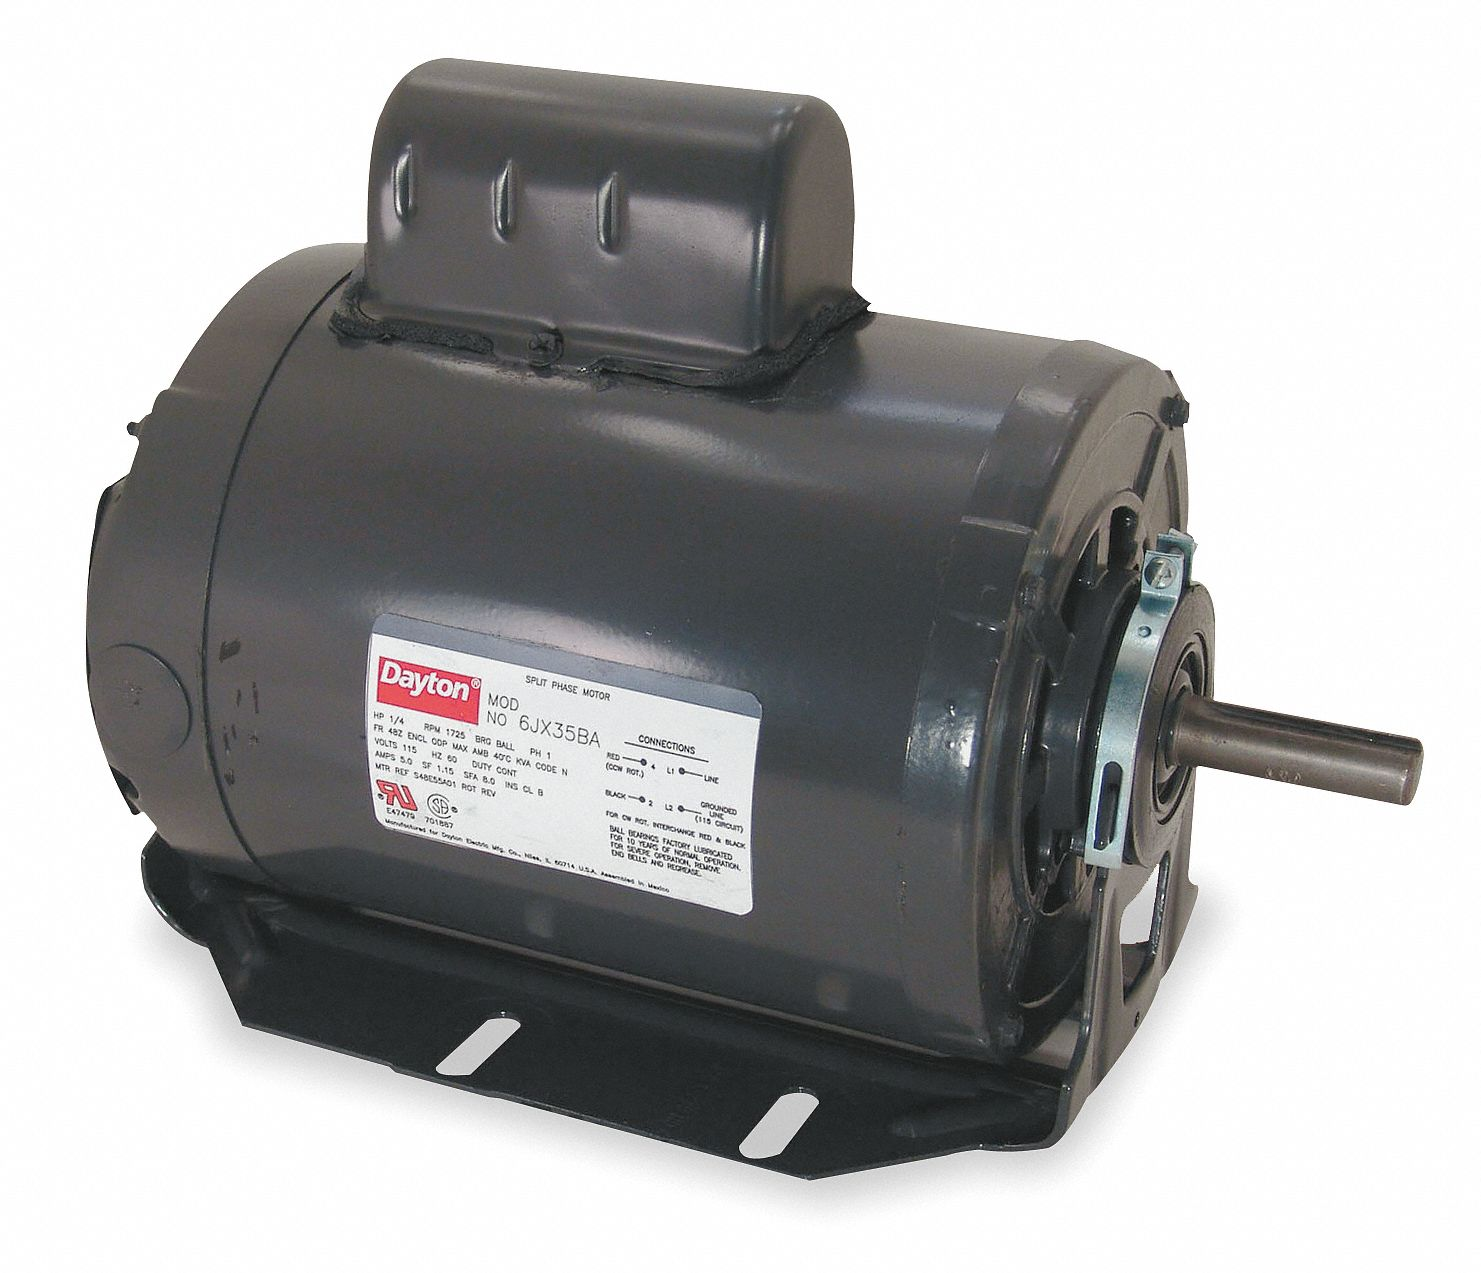 6K346_AS01 dayton gp mtr,cs,odp,3 4 hp,3450 rpm,56 6k346 6k346 grainger  at aneh.co